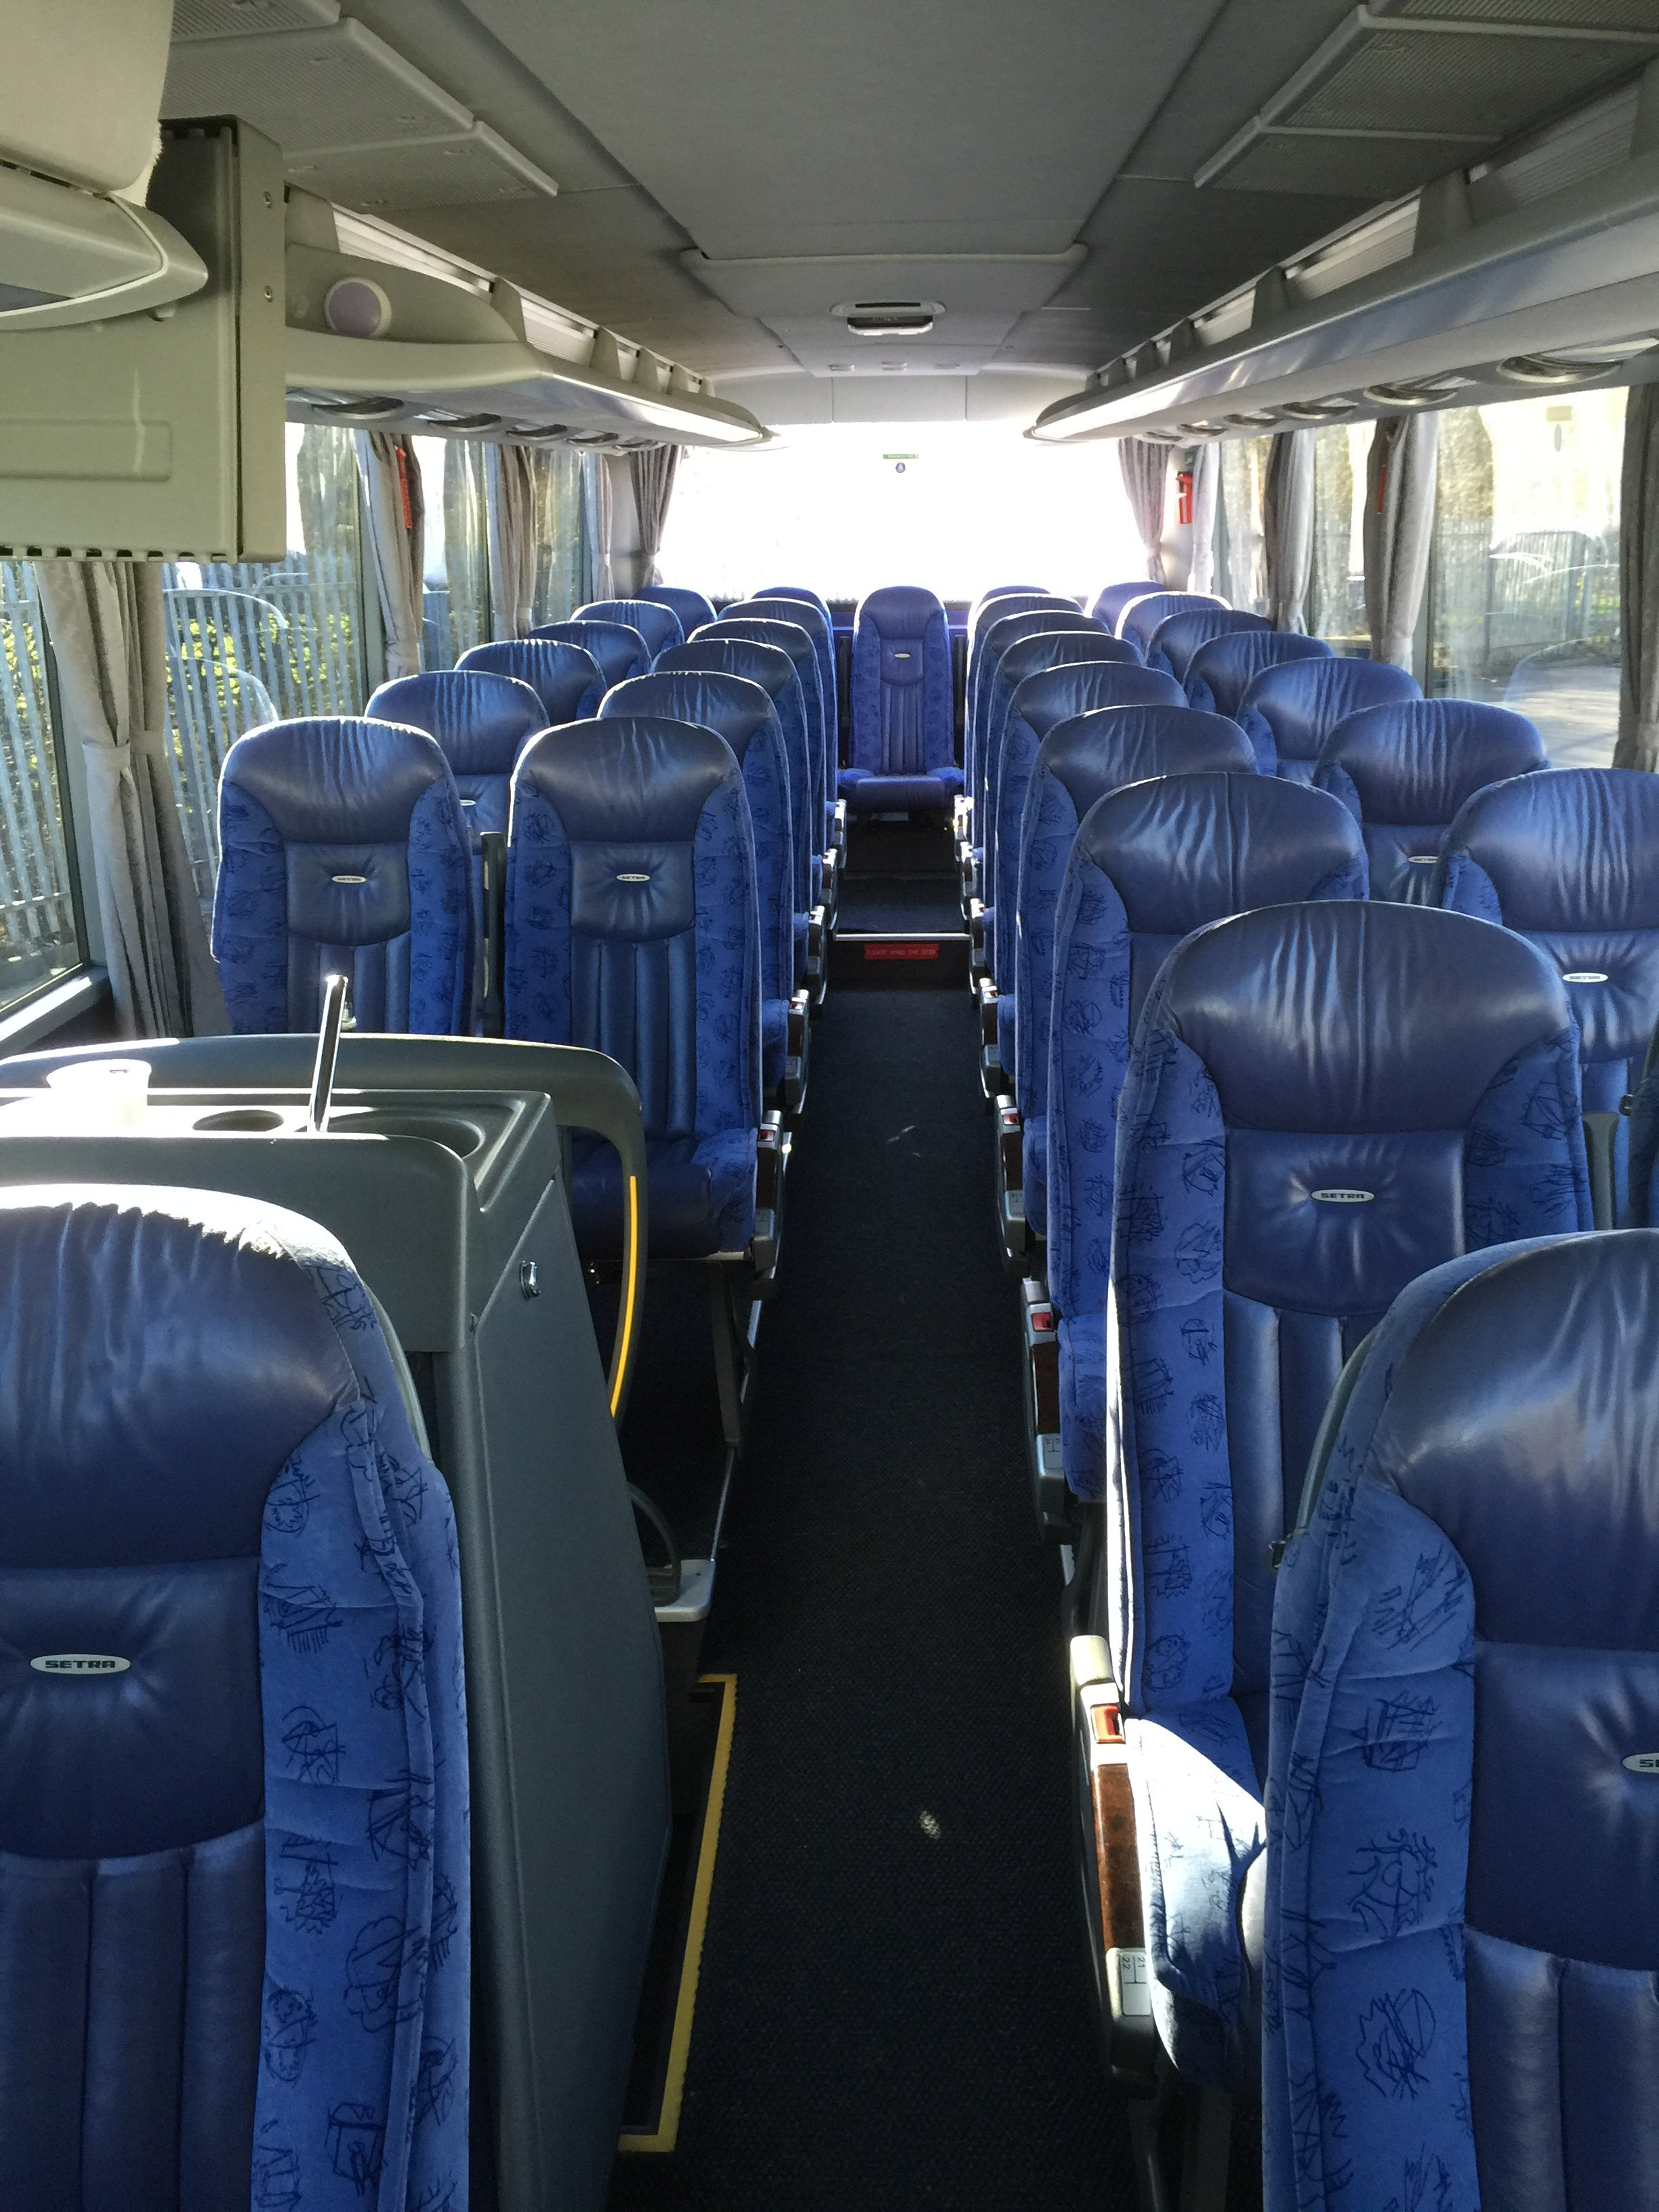 interiors of the bus